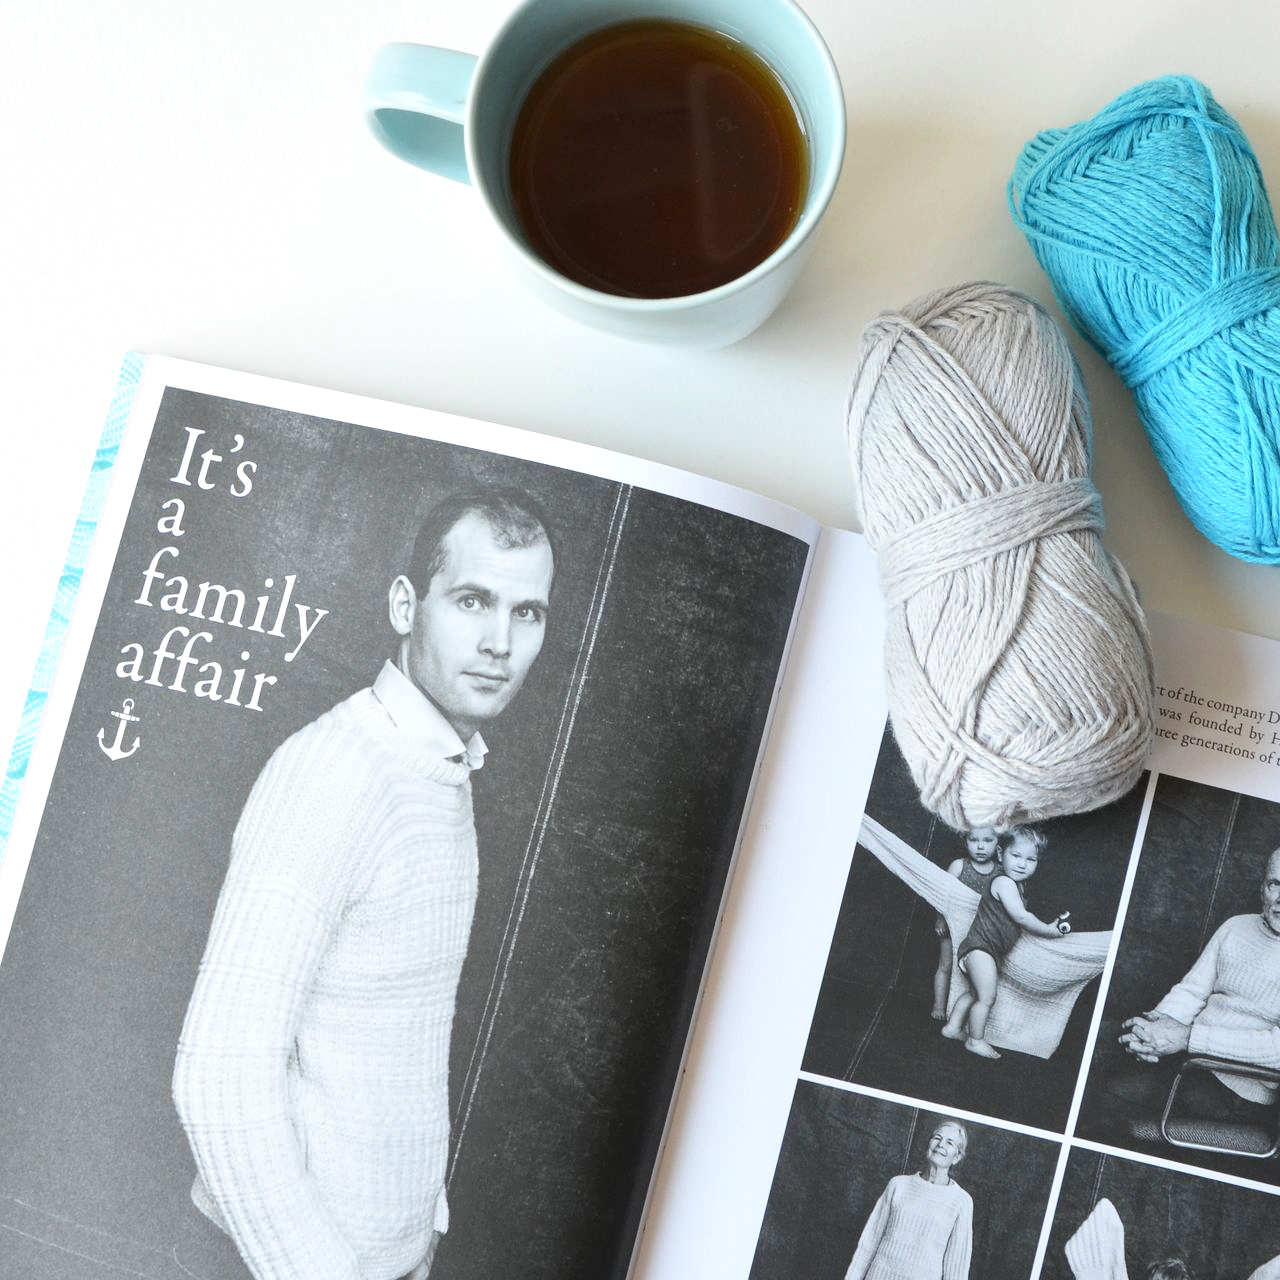 YARN book-a-zine published by Scheepjes contains 15 knitting and crochet patterns.